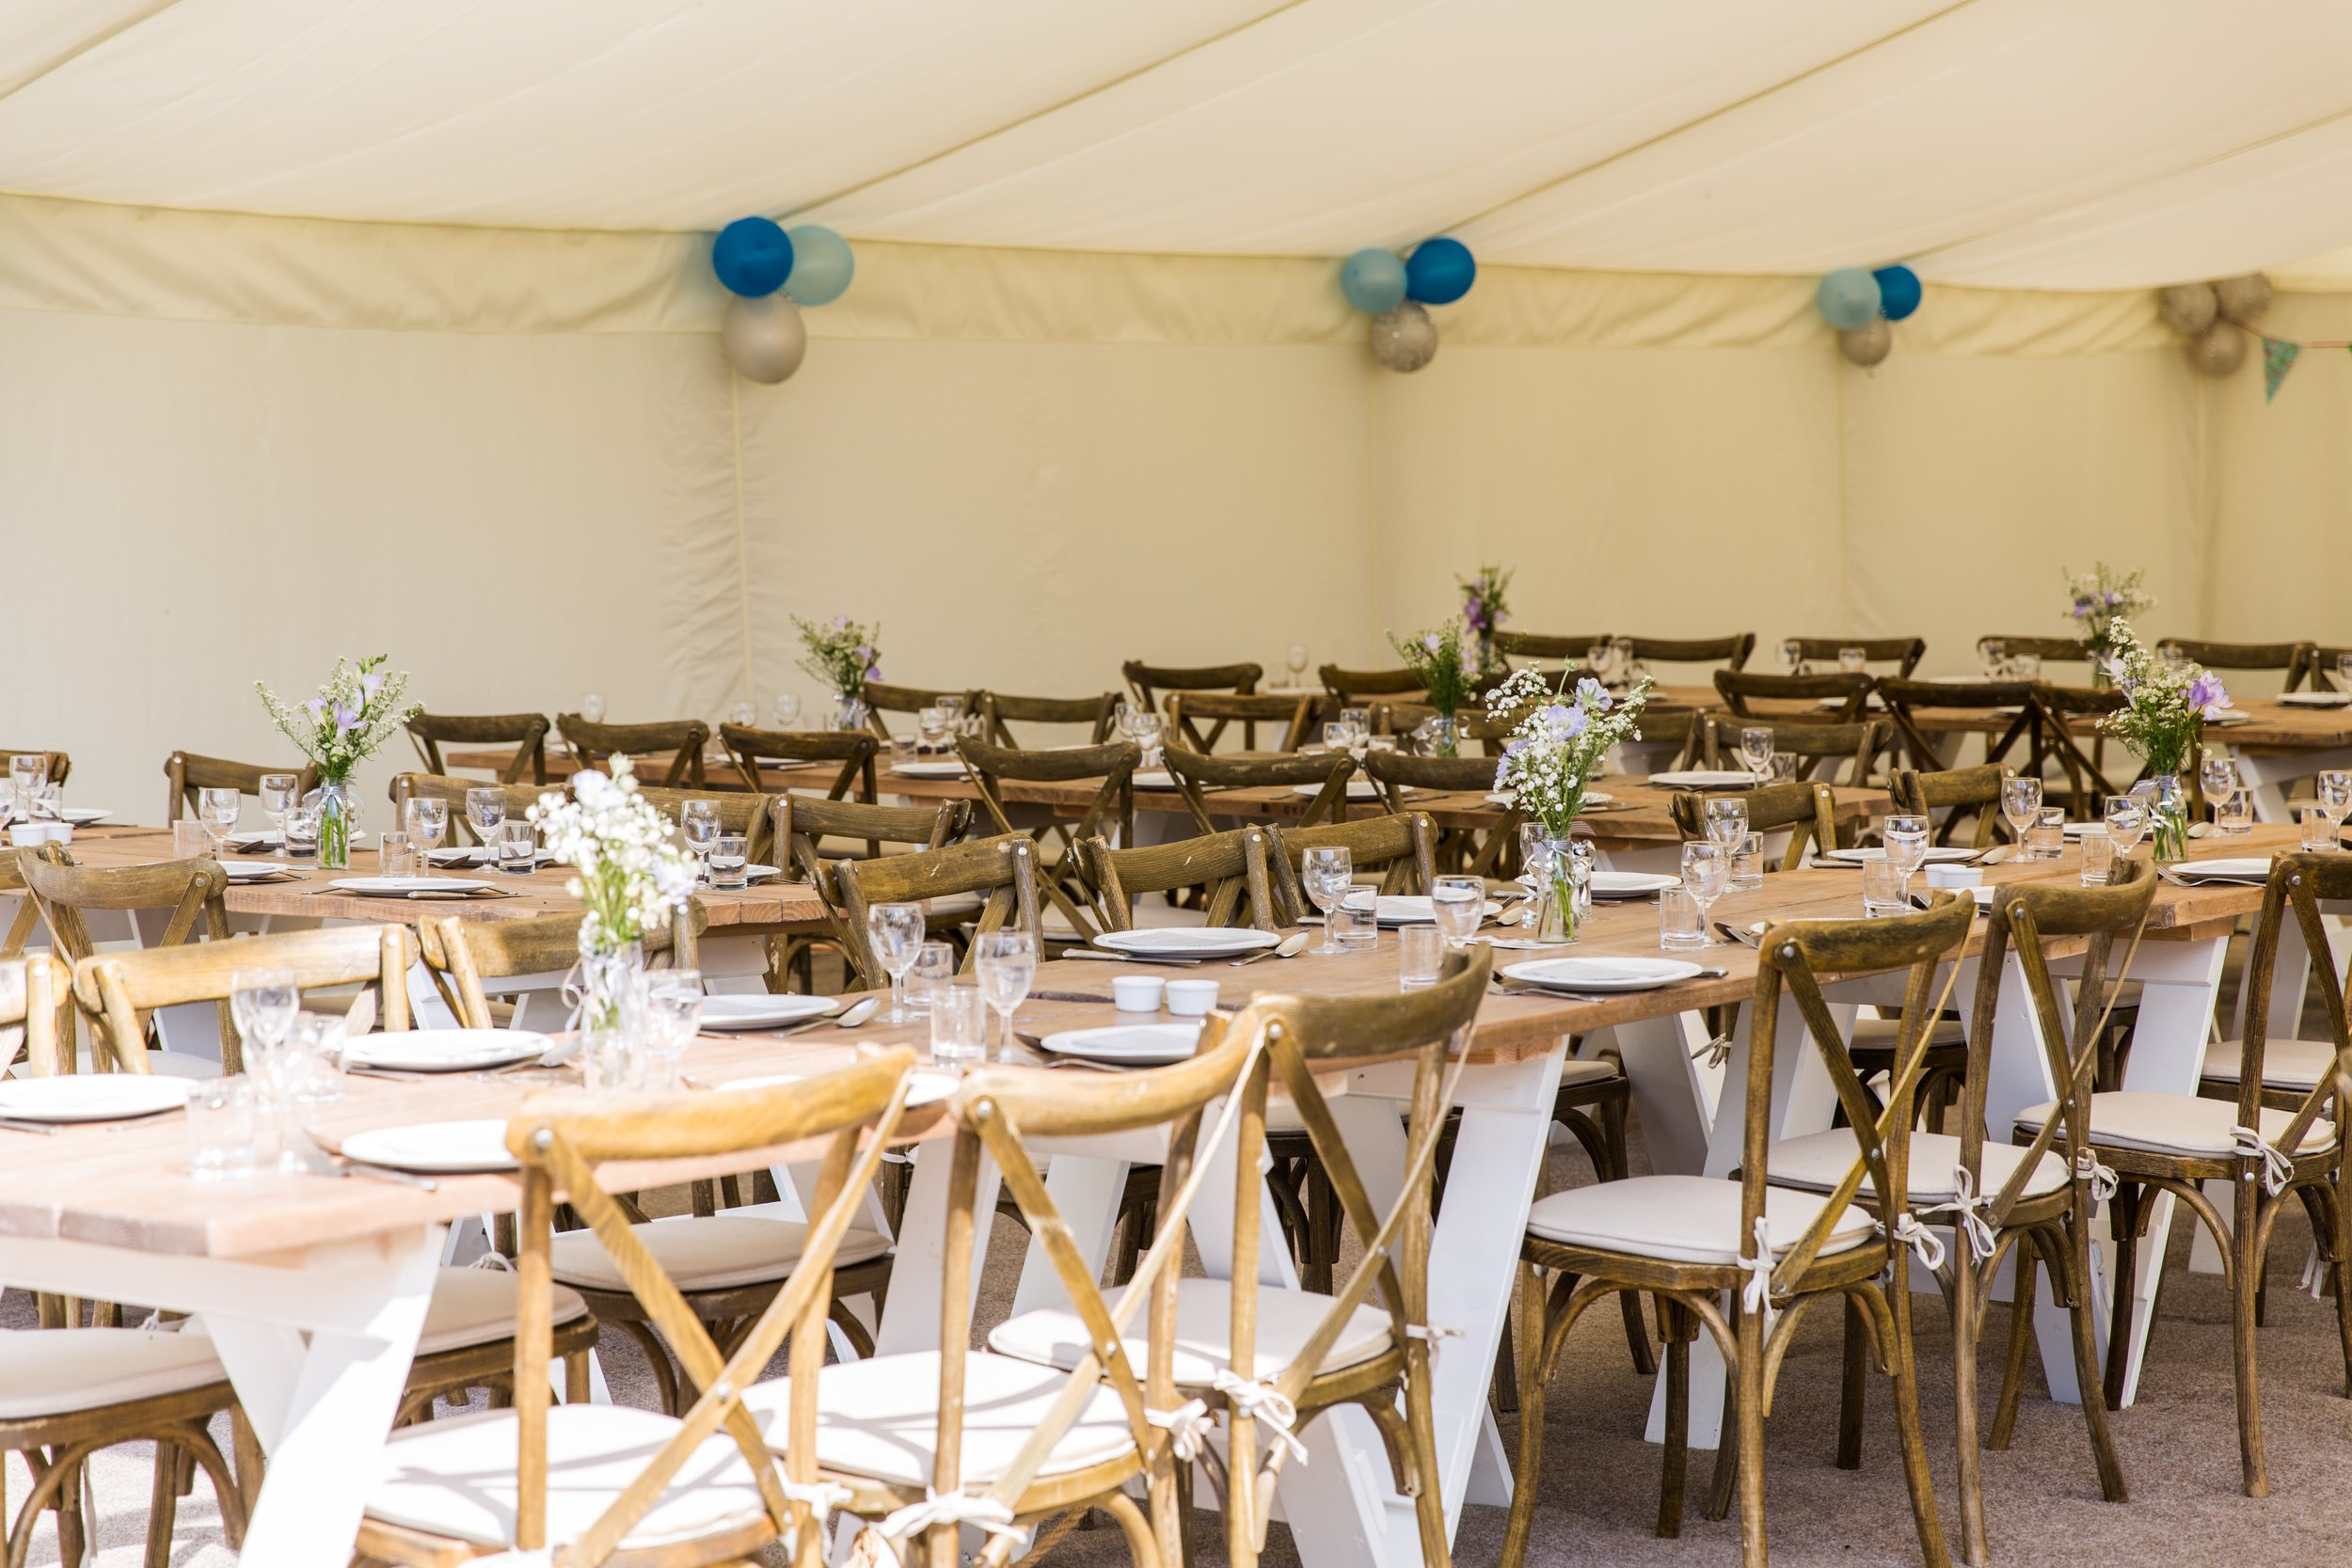 Wedding catering marquee